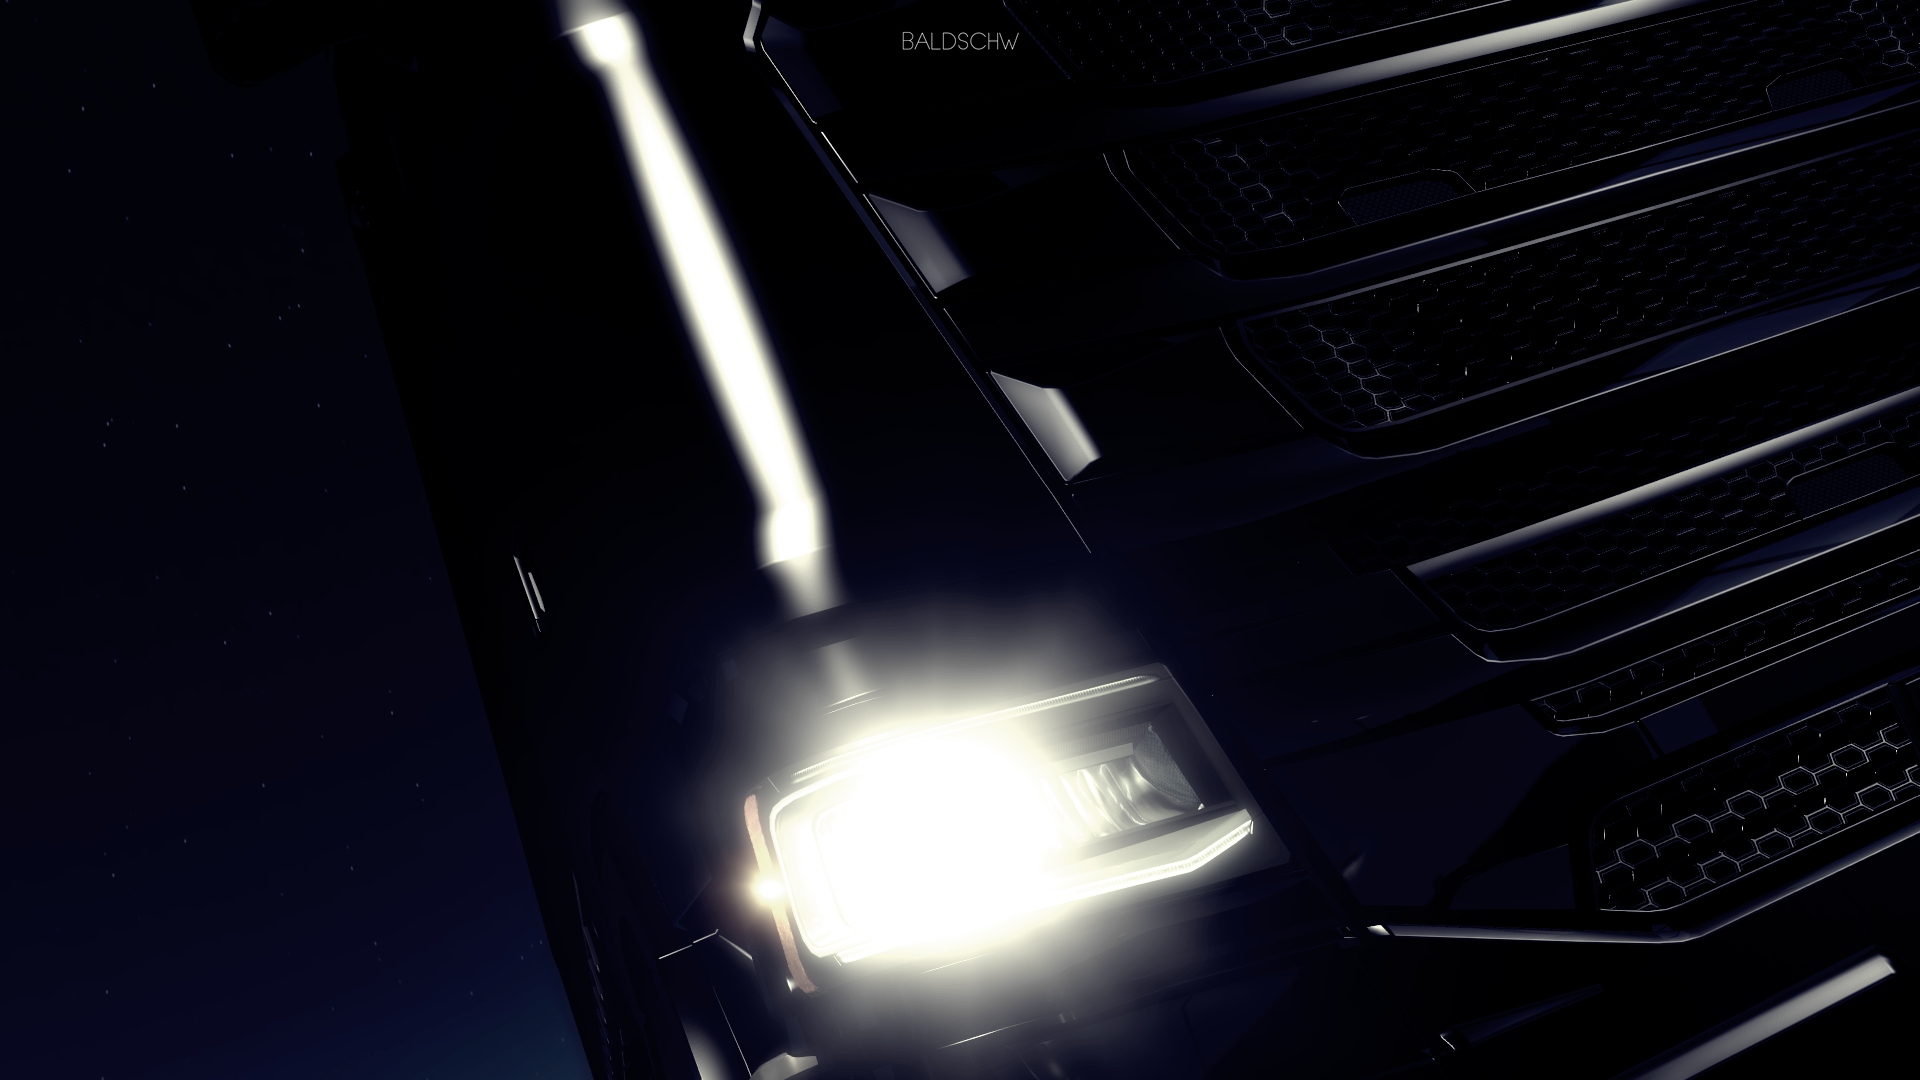 ets2-20190511-224435-00.png